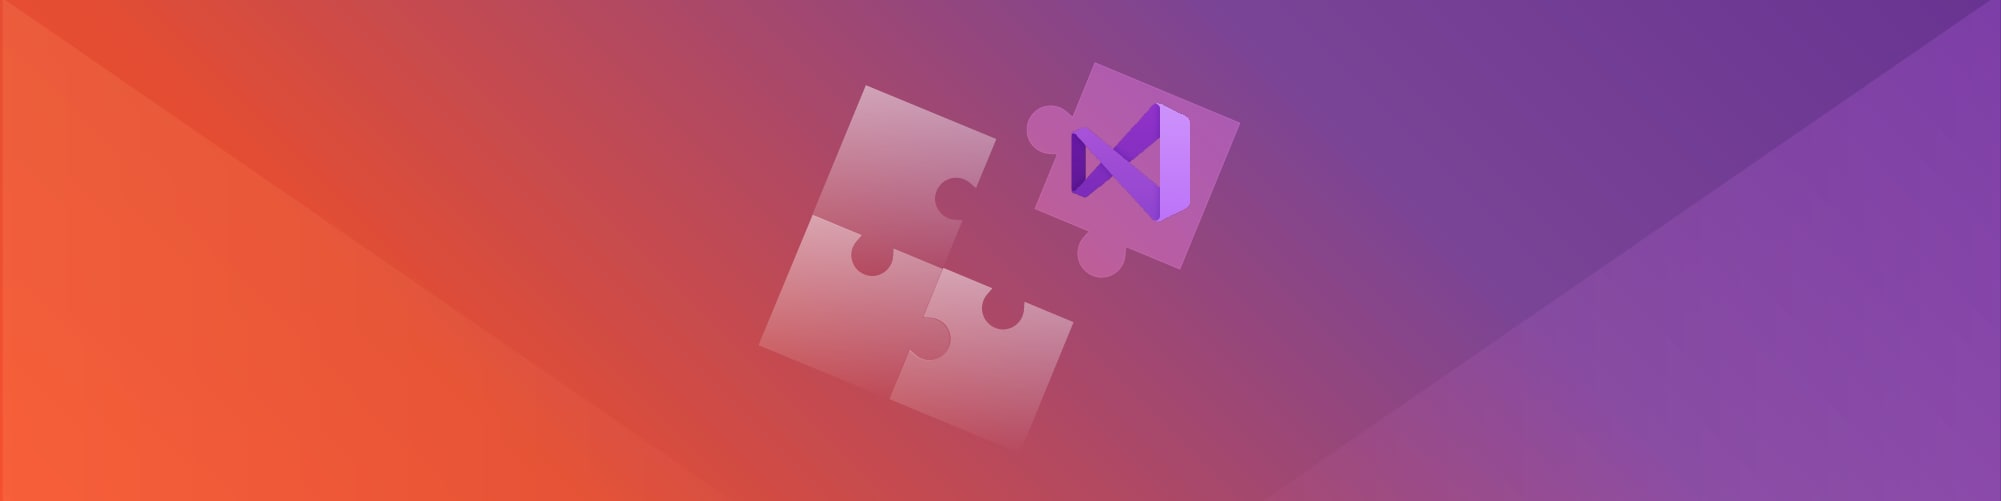 Snyk vulnerability scanning is available directly within Visual Studio